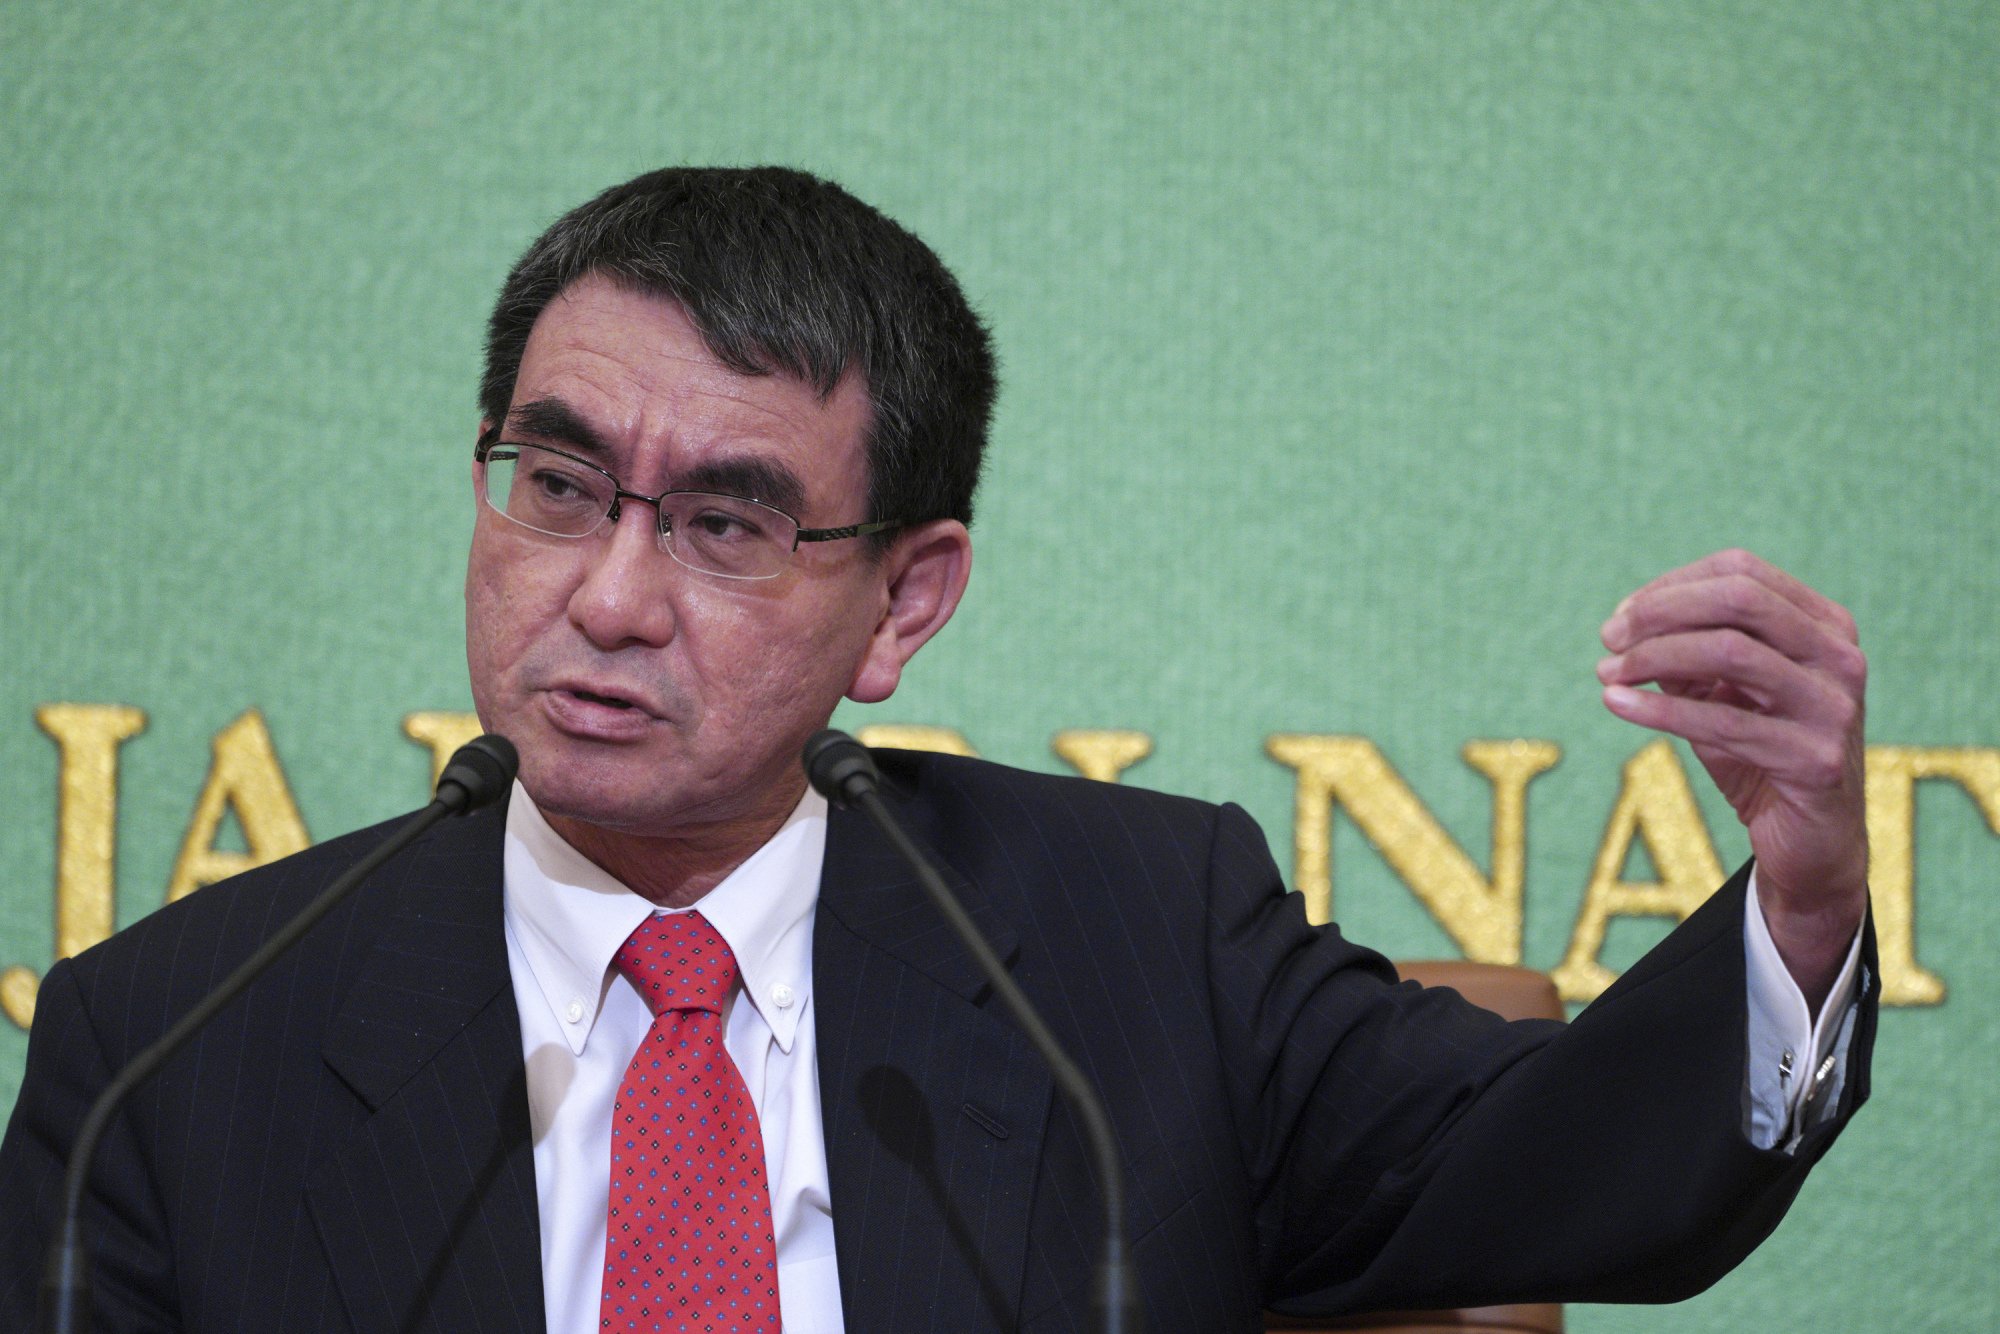 Foreign Minister Taro Kono speaks about Japan's ties with South Korea, which have been soured by wartime historical issues, during a news conference Wednesday at the Japan National Press Club in Tokyo. | AP